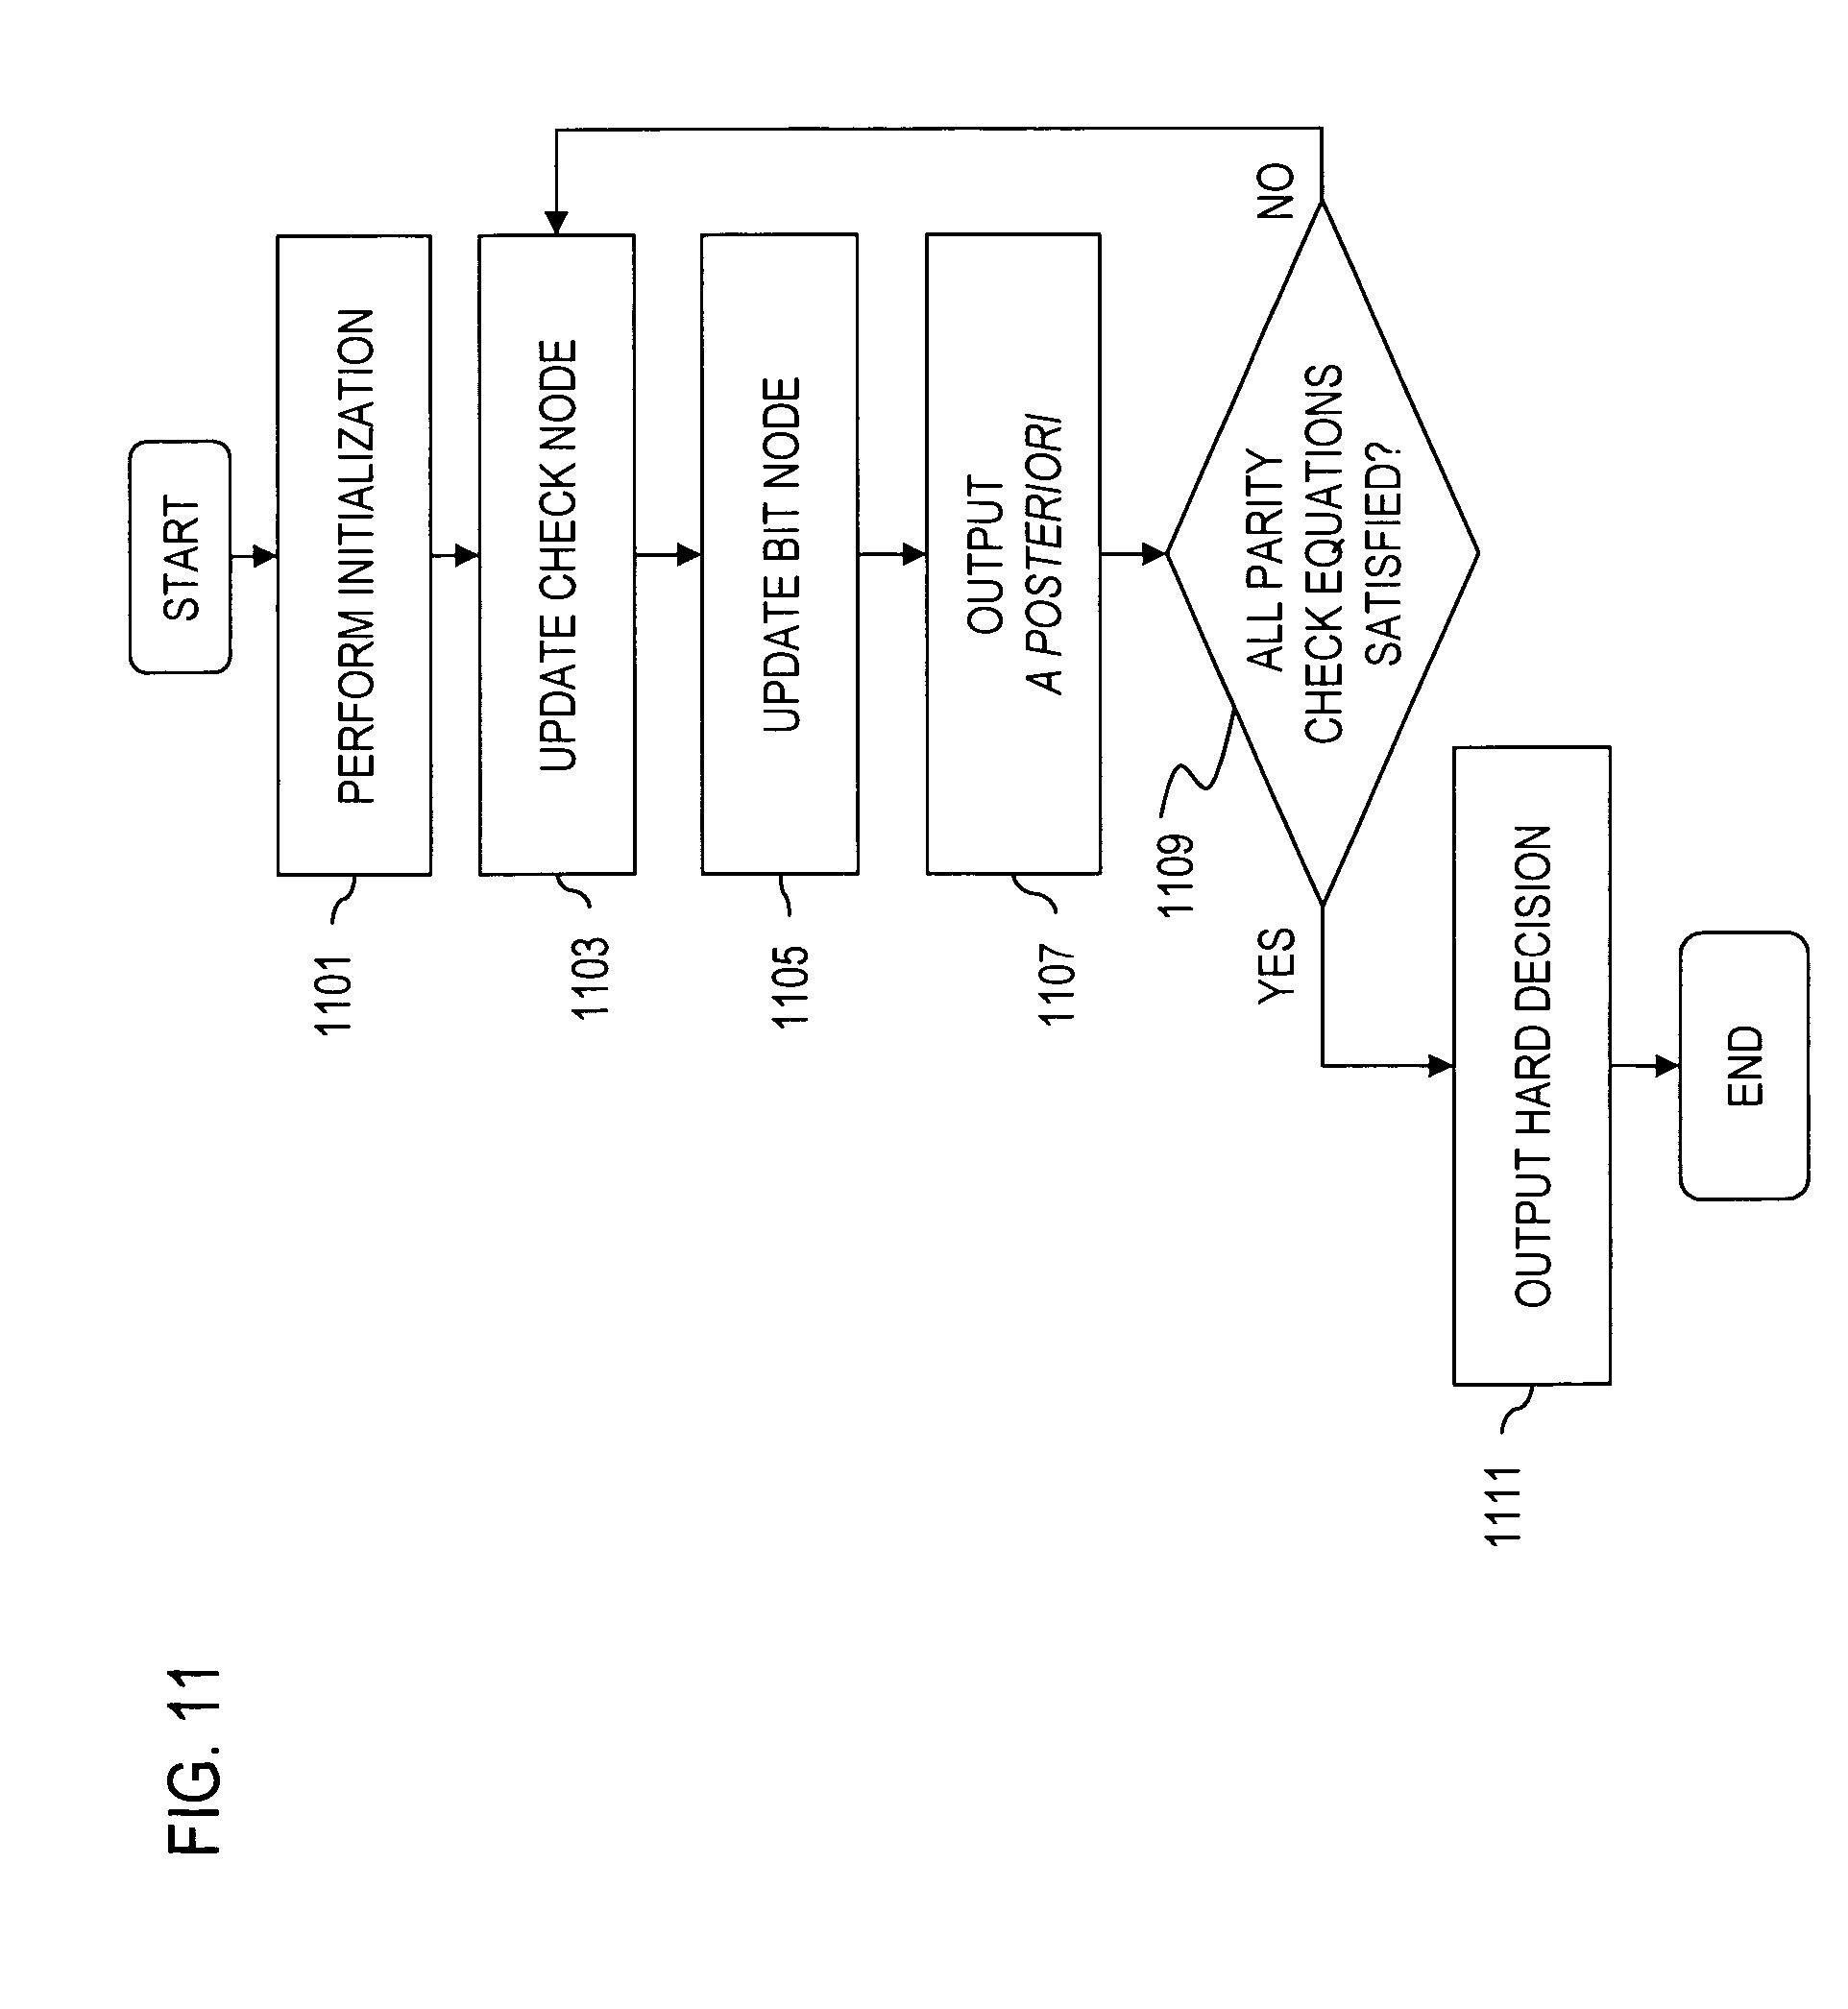 constellation diagram of 16 psk passtime gps wiring patent us20050271160 bit labeling for amplitude phase